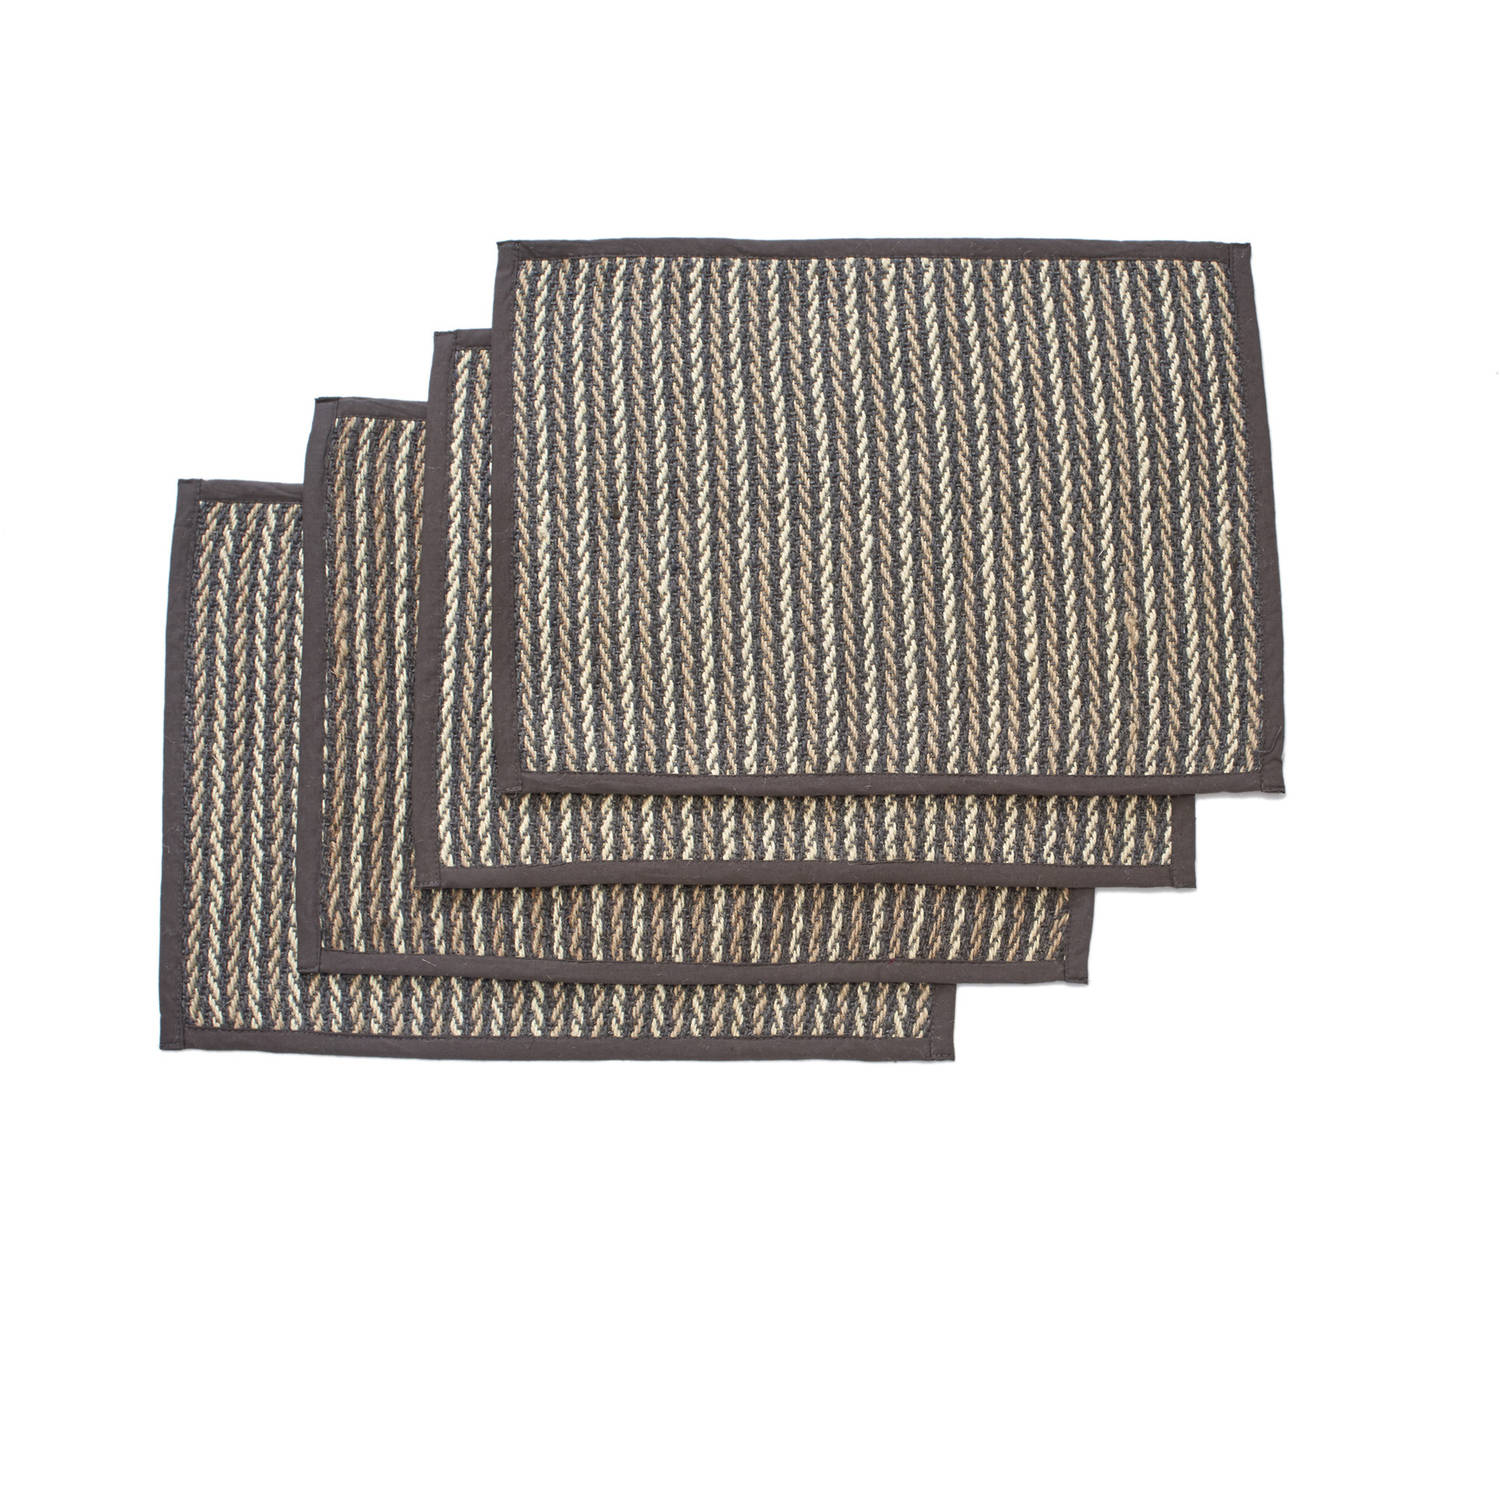 Better Homes and Garden Twisted Vine Jute Placemat, Set of 4 by TOWN AND COUNTRY LIVING